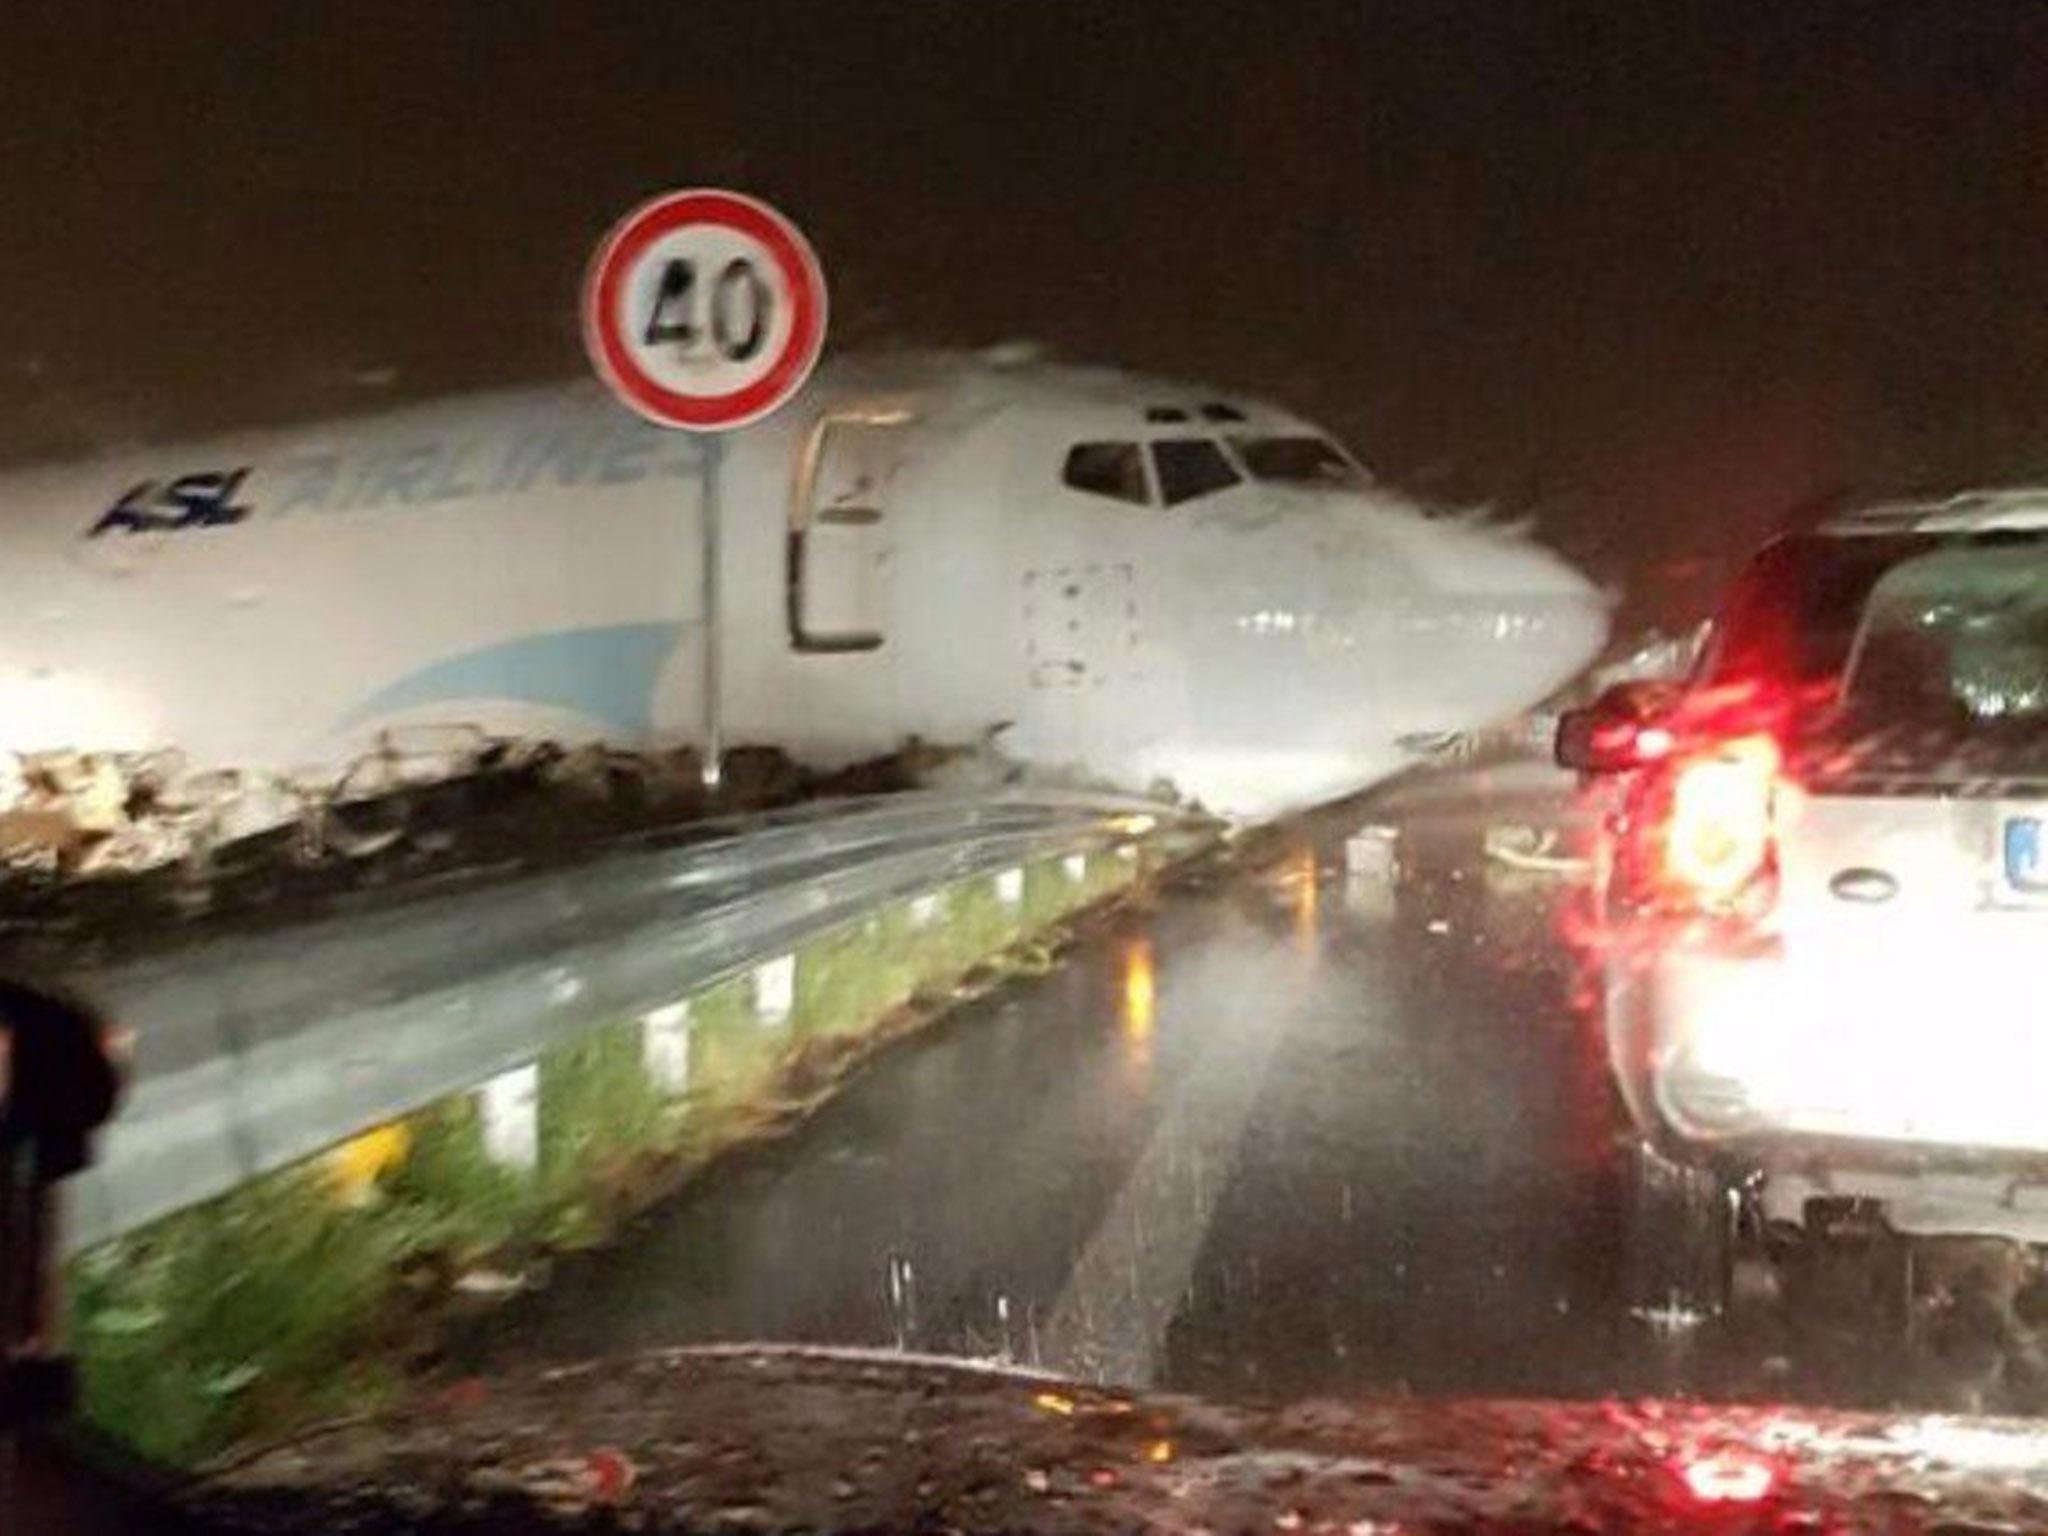 cargo plane crashes into oncoming road traffic after overshooting